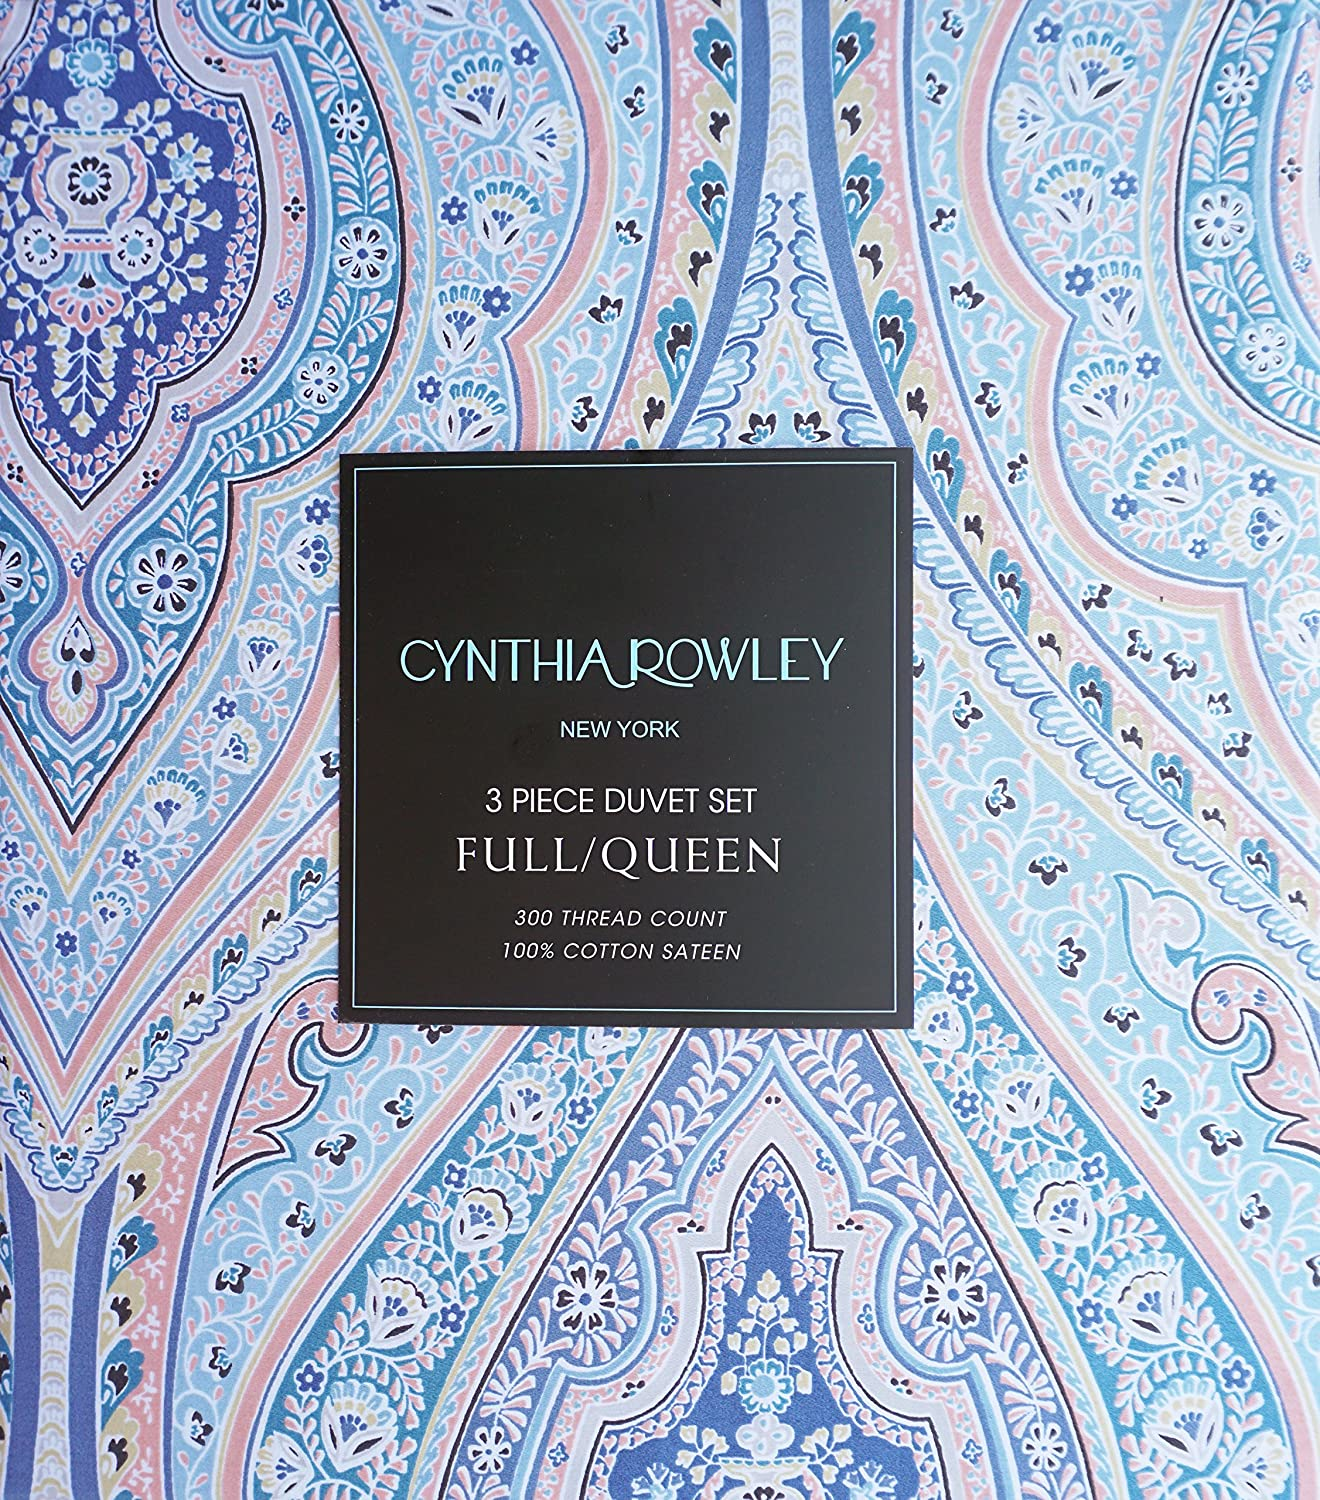 Queen Size Duvet Comforter Cover Set and Shams Classical Ornate Boho Exotic Floral Medallions Print Pattern in Shades of Blue Yellow Salmon Pink and White Cynthia Rowley Home Bedding 3 Piece Full